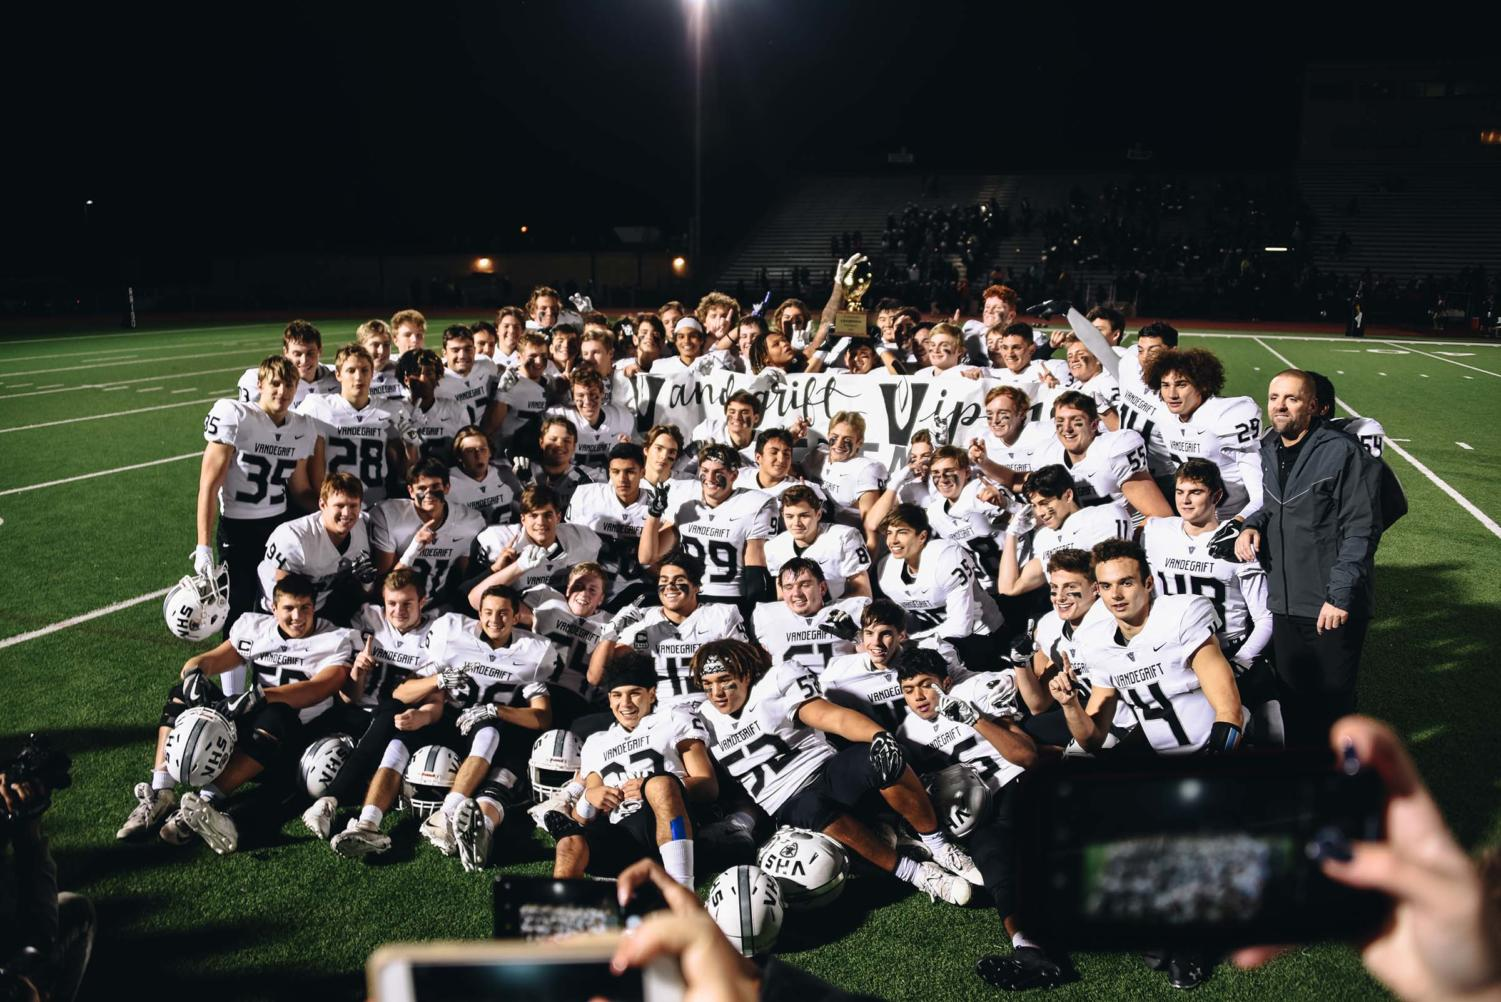 The football team celebrates after a 28-7 win over Stony Point.